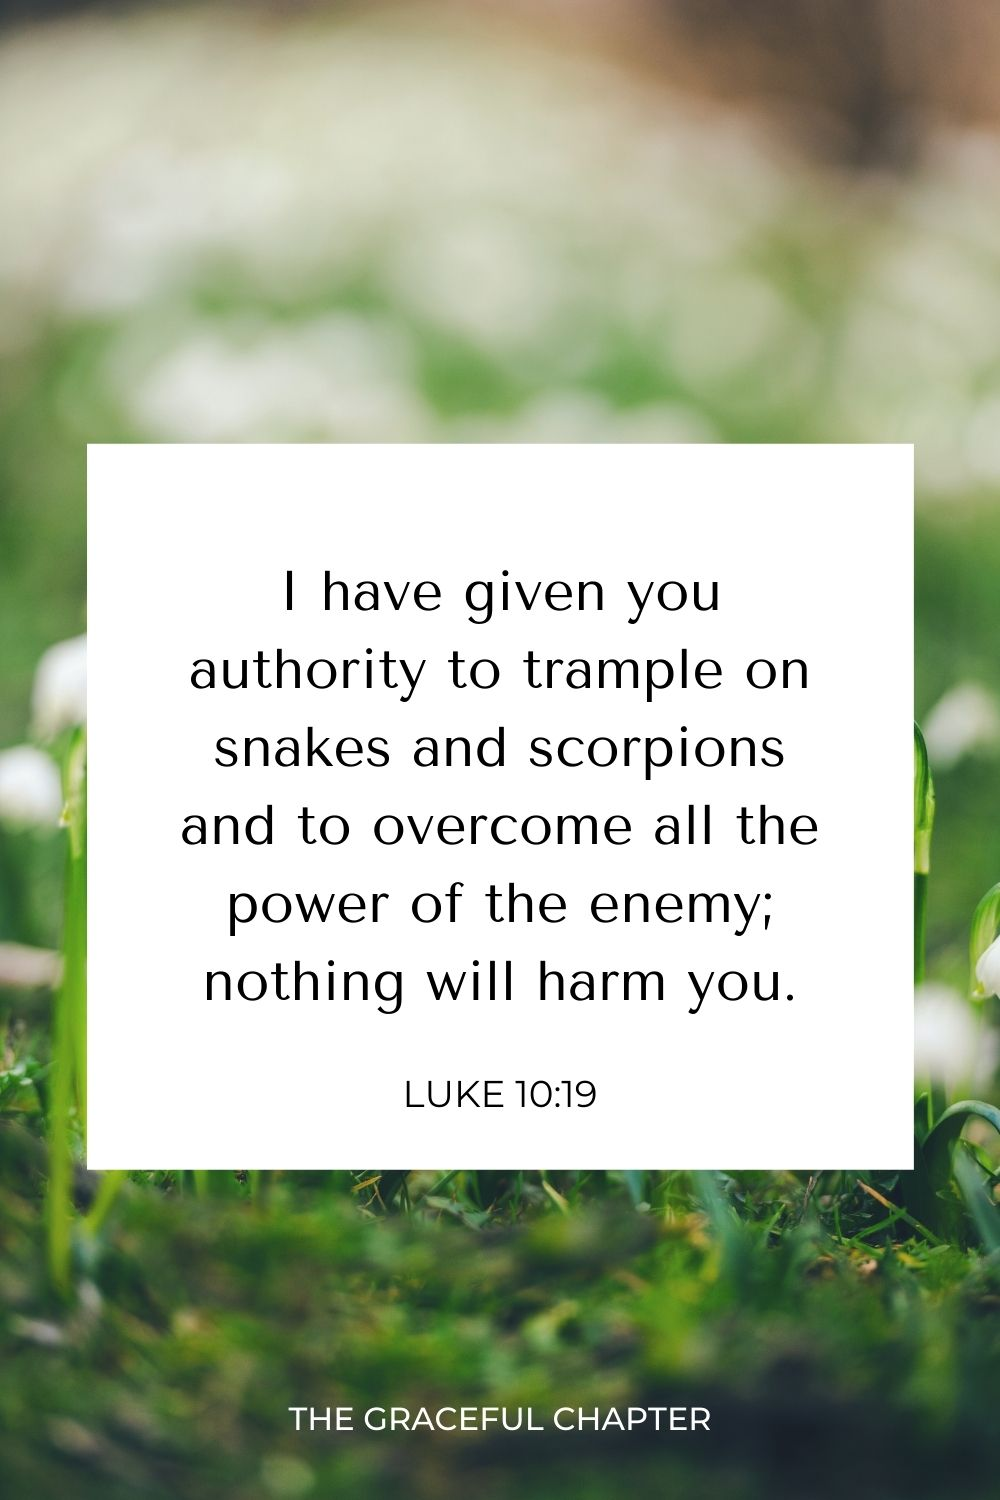 I have given you authority to trample on snakes and scorpions and to overcome all the power of the enemy; nothing will harm you. Luke 10:19